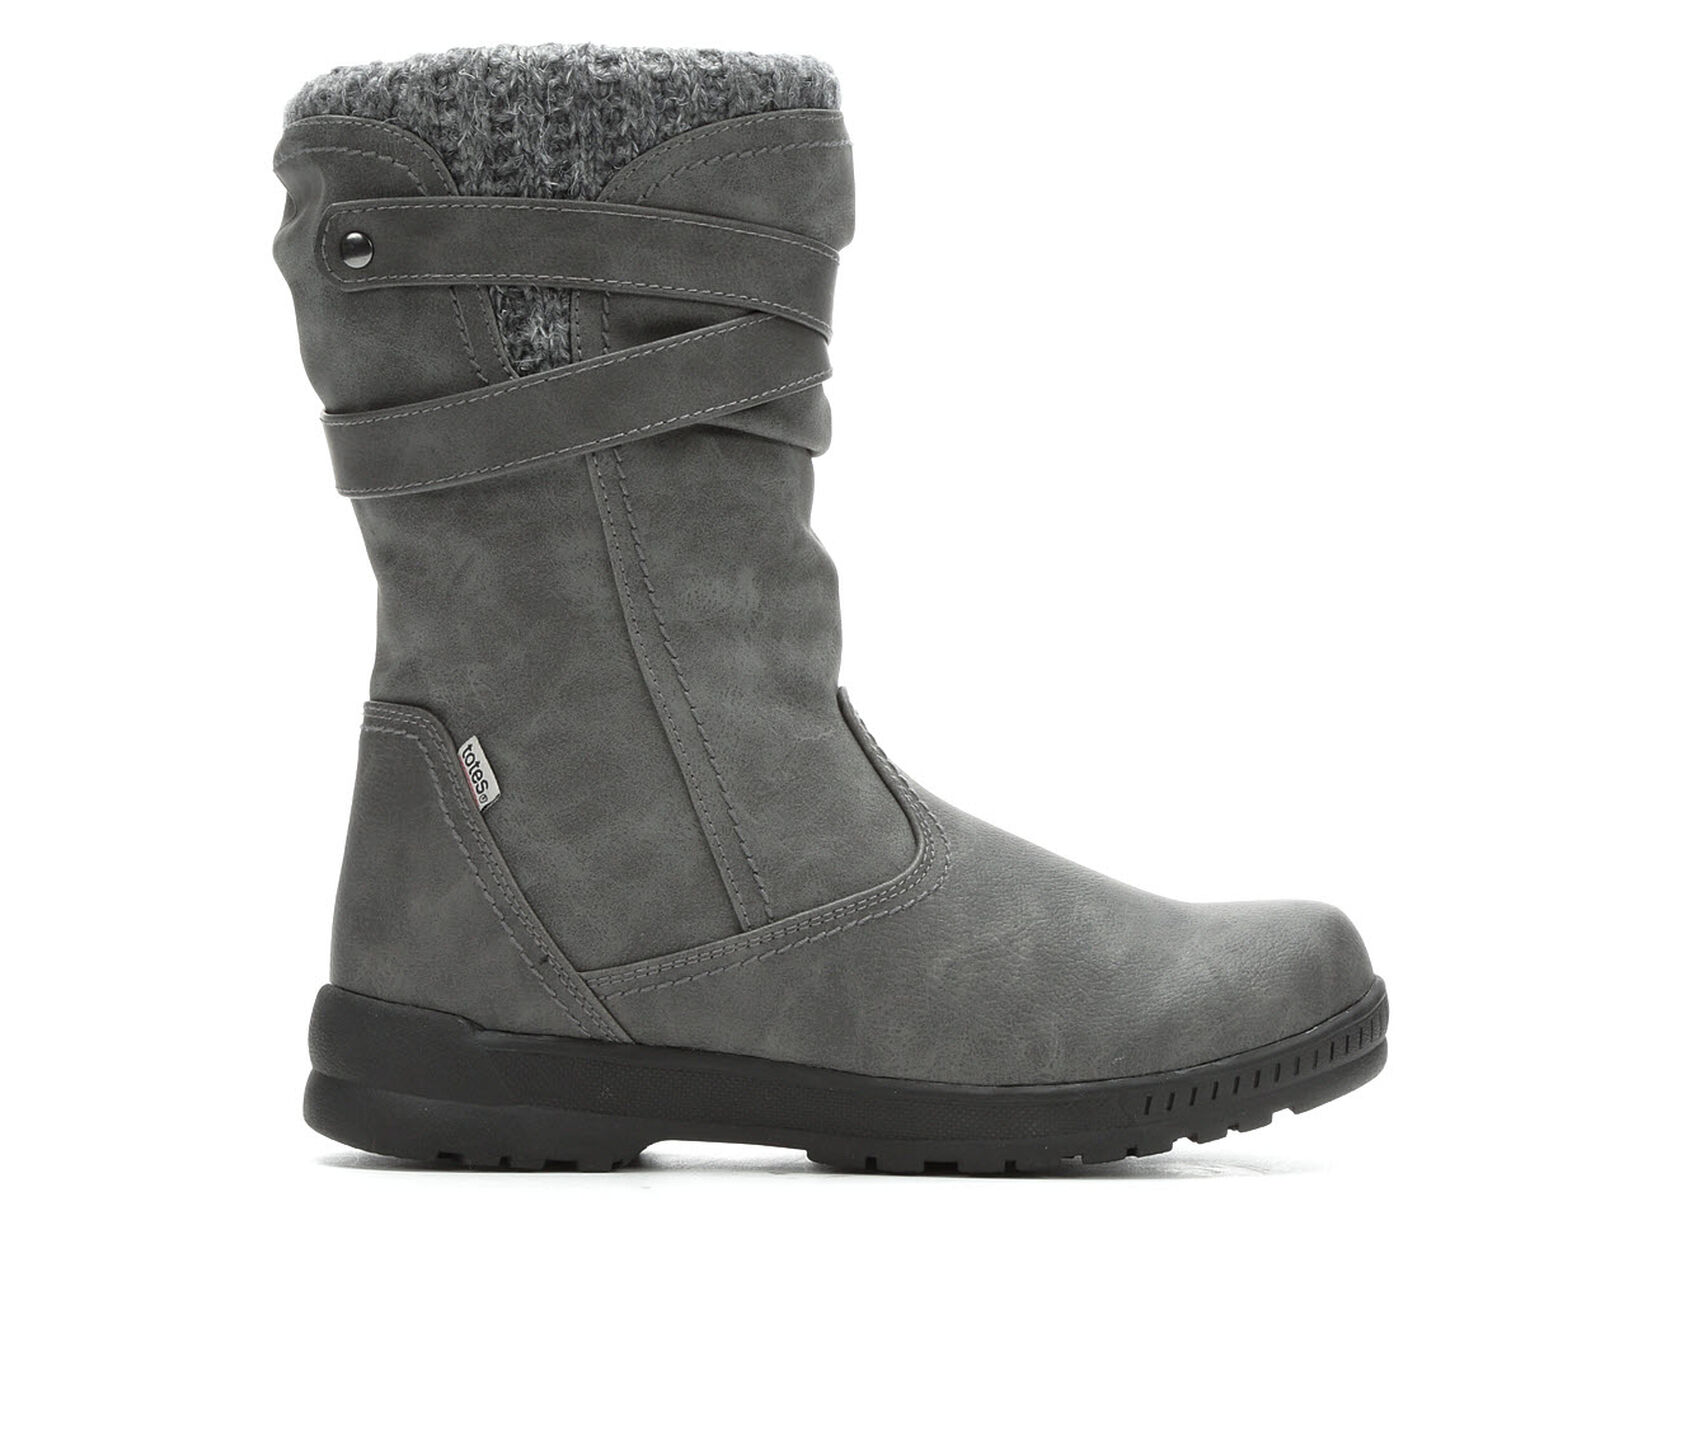 fashion styles high quality best shoes Women's Totes Kappa Boots